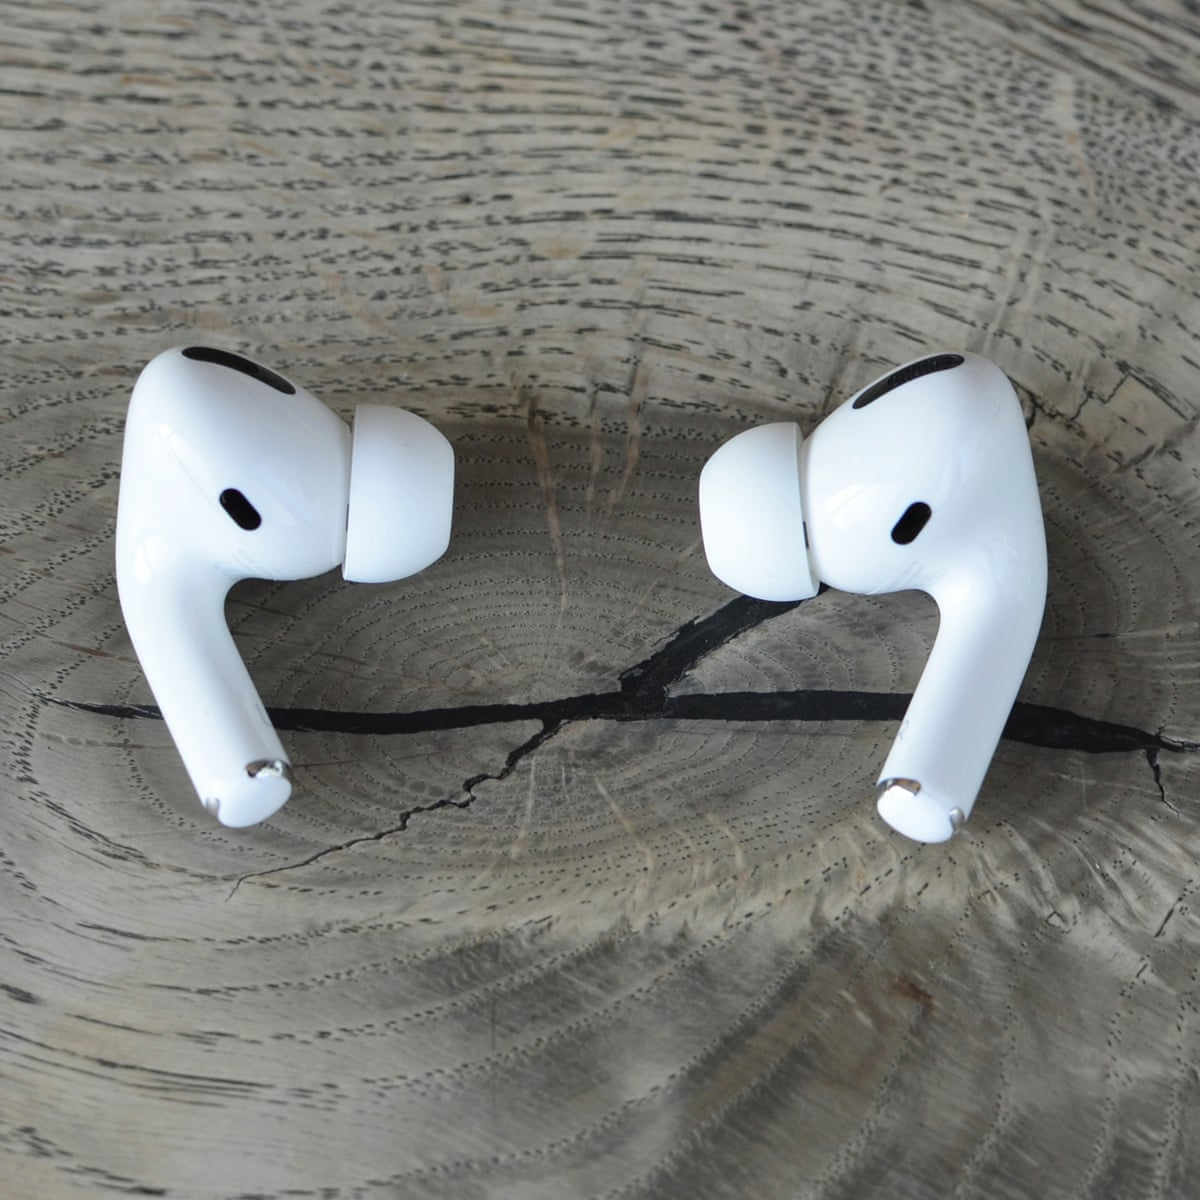 airpods pro wearing vs airpods